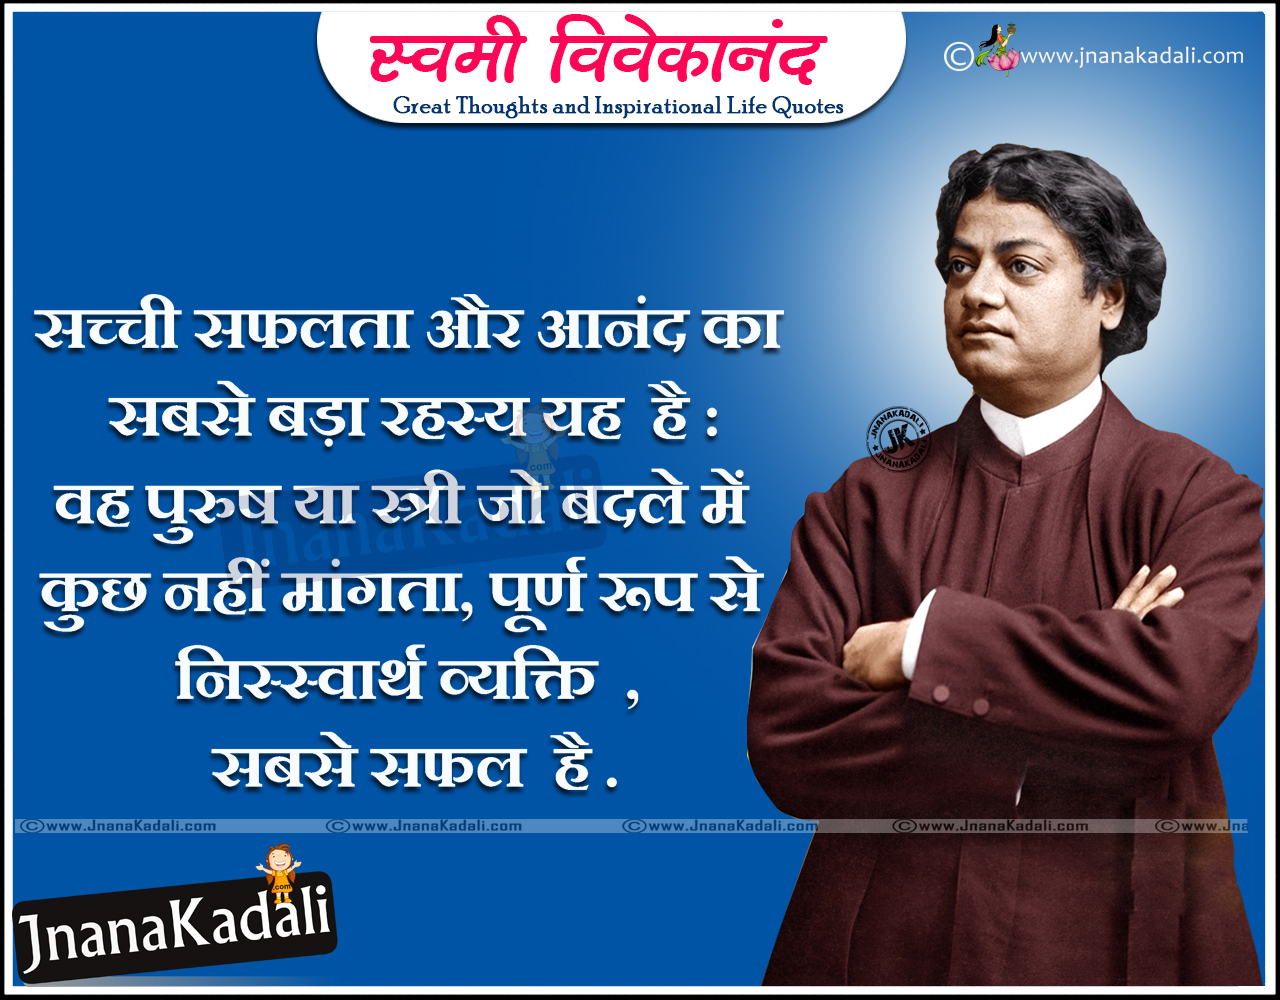 Swami Vivekananda Hindi Motivational Quotes For Youth In Hindi Brainysms